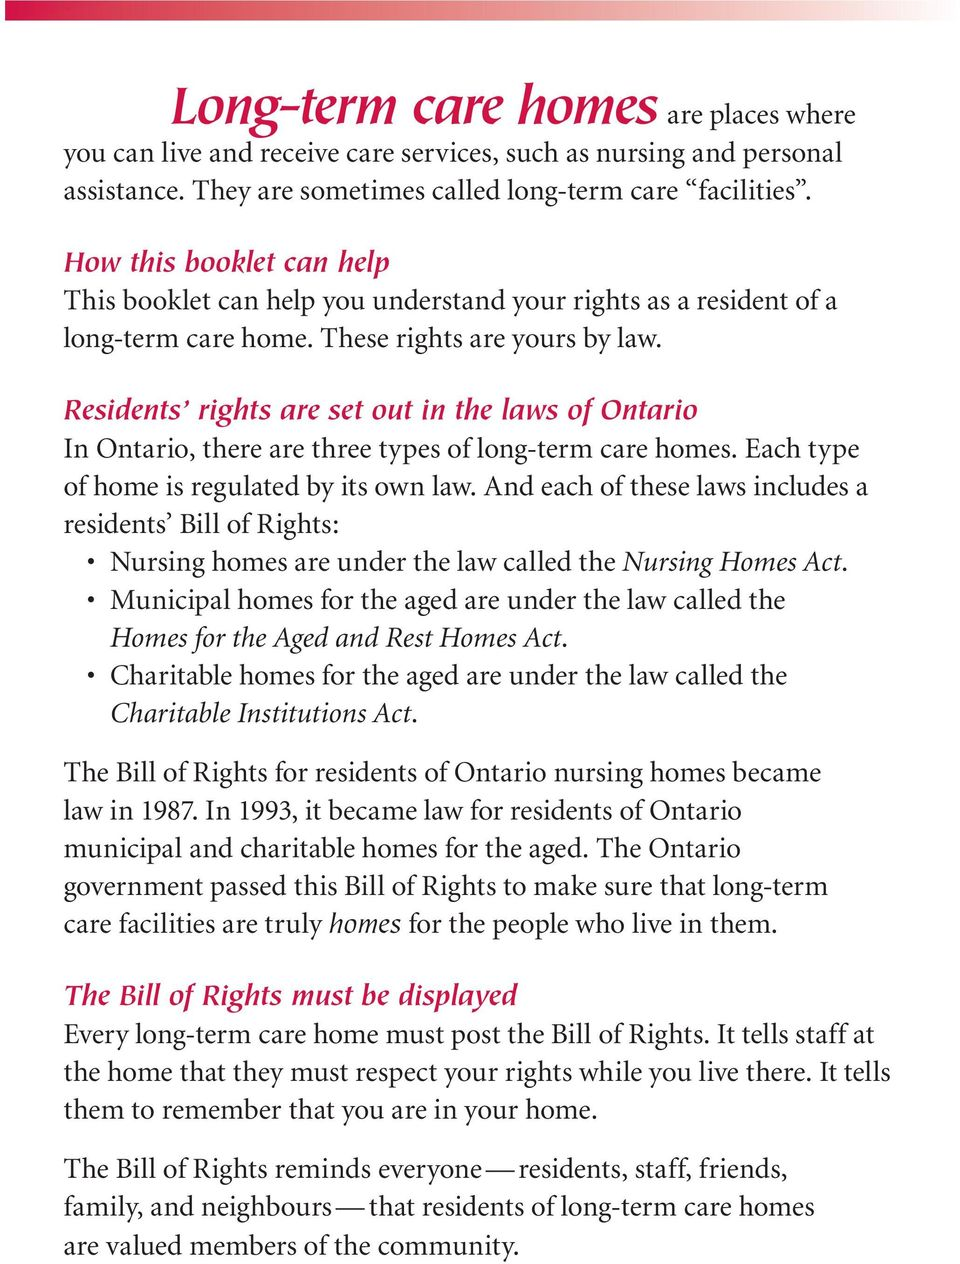 Residents rights are set out in the laws of Ontario In Ontario, there are three types of long-term care homes. Each type of home is regulated by its own law.